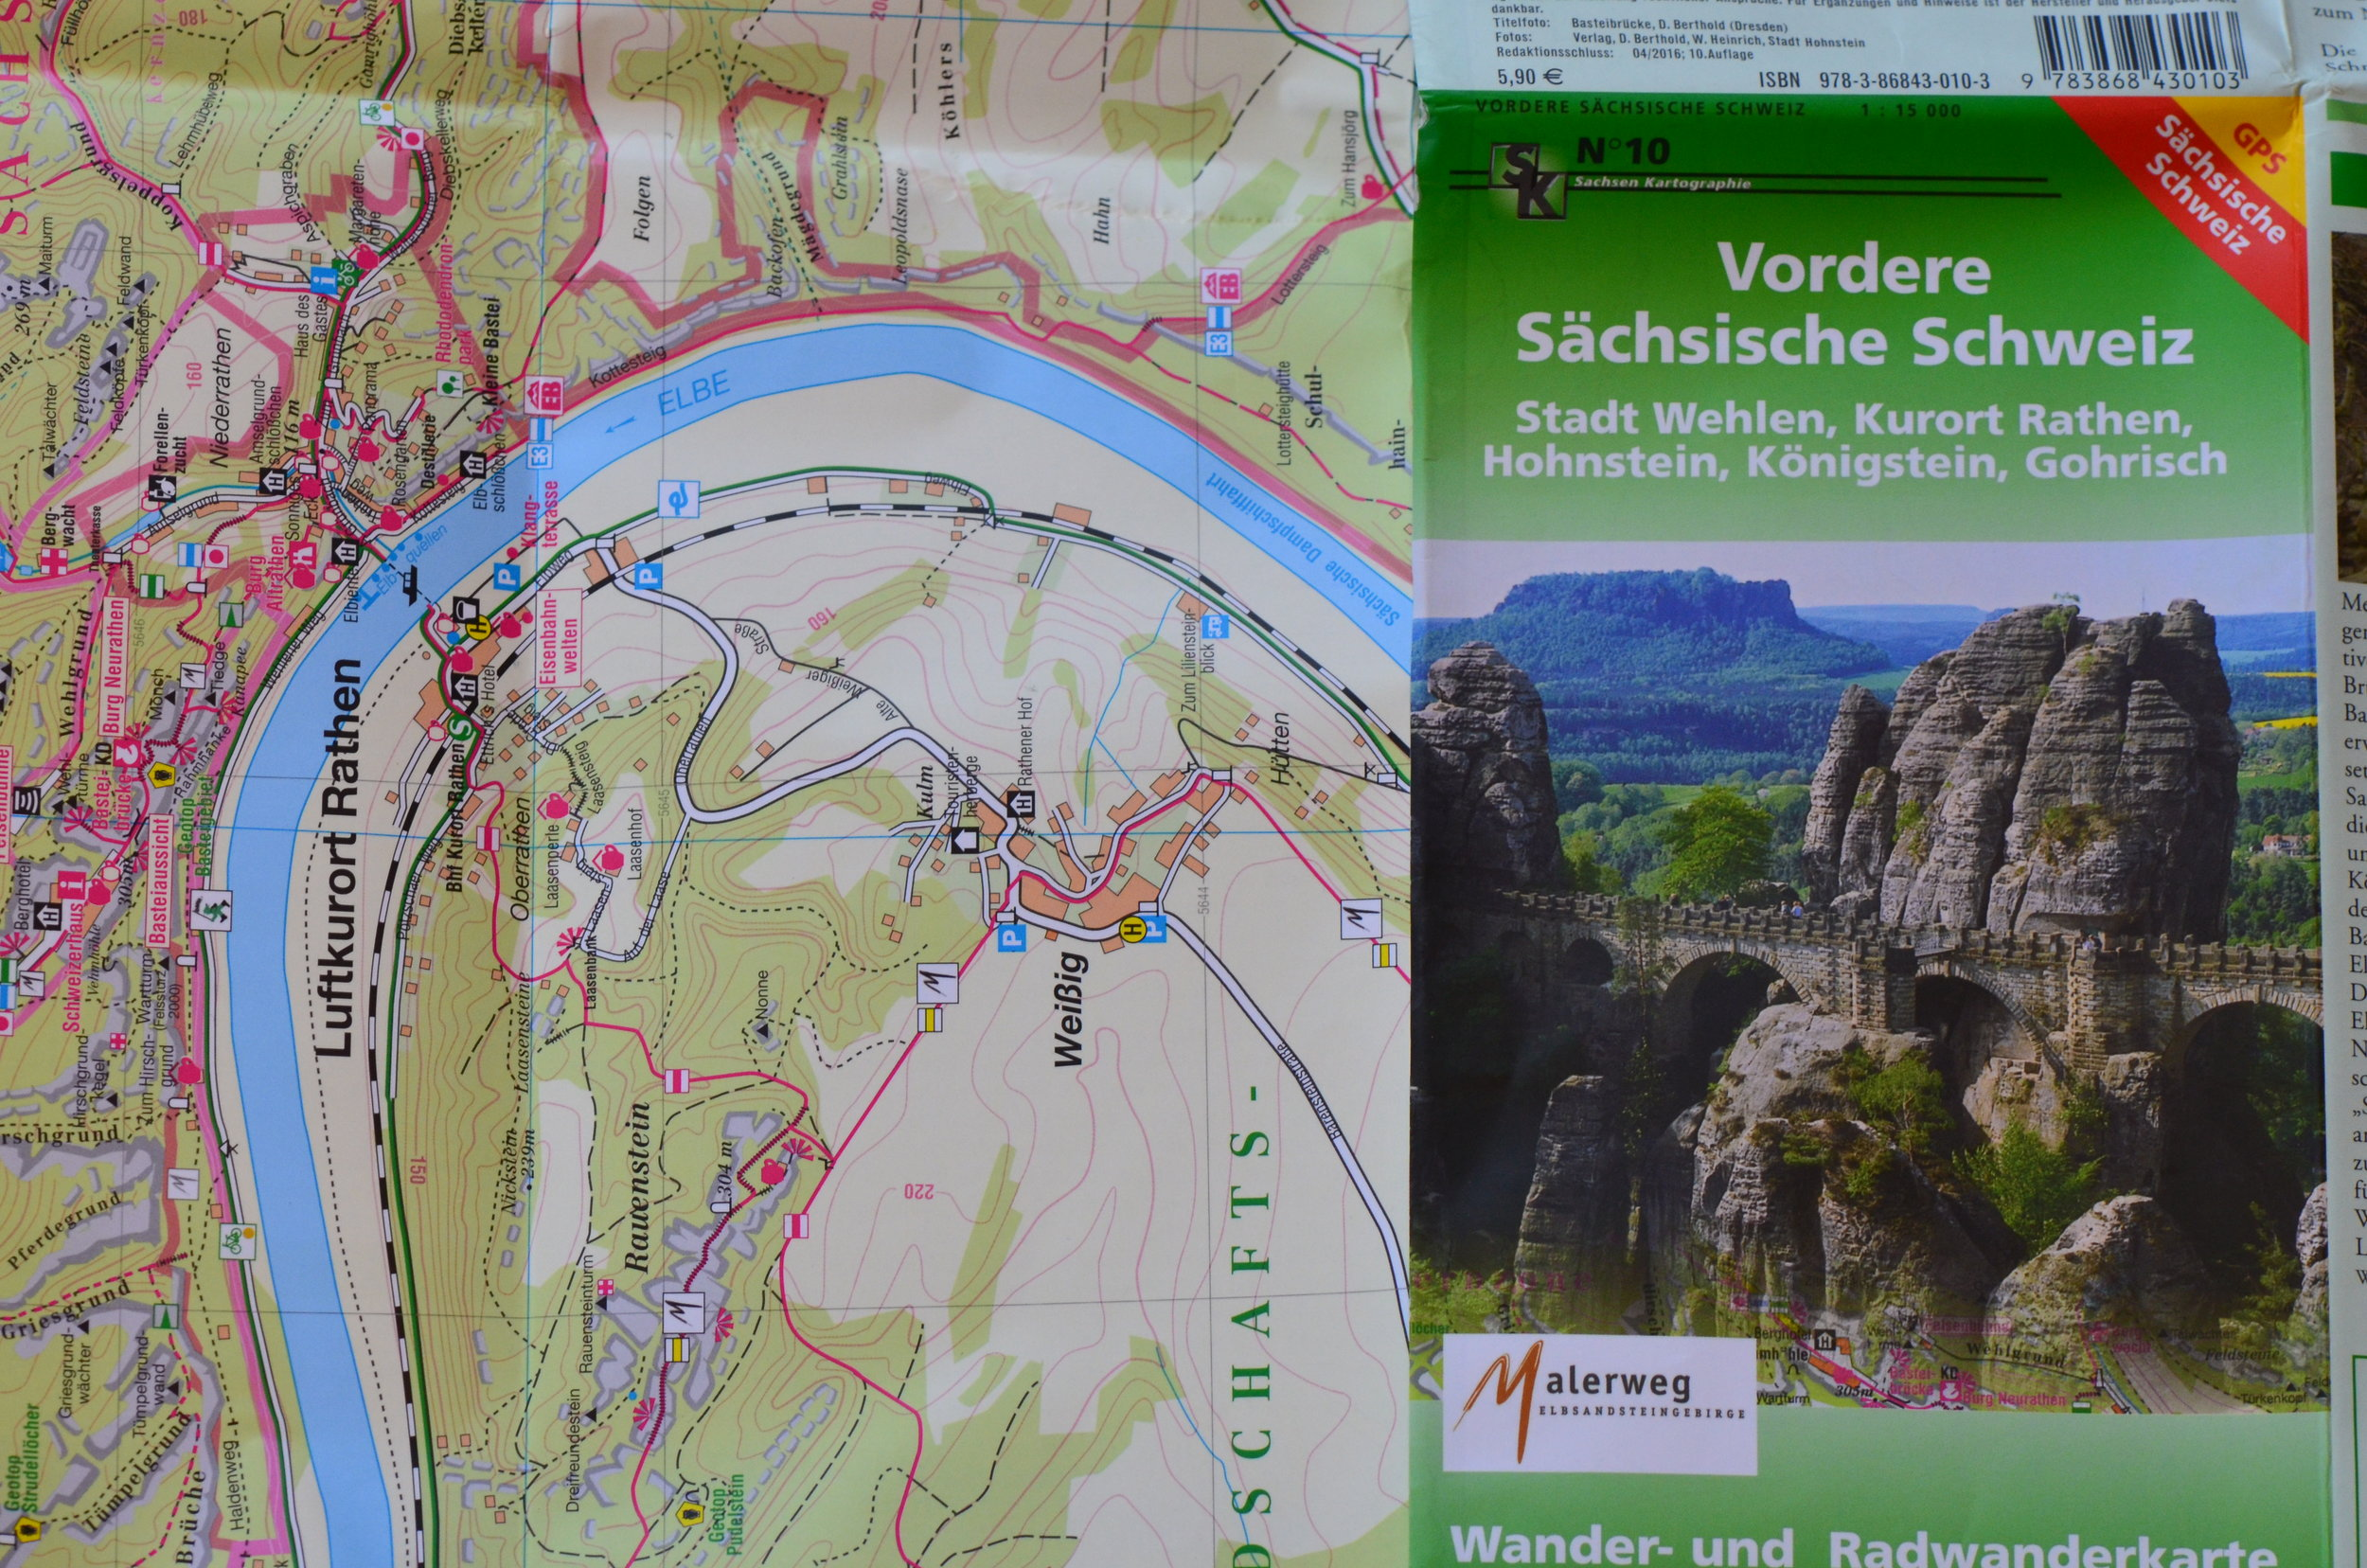 The Saxony Switzerland National Park was established in 1990- its 93 squarekm offers a whole host of different hiking trails , and being only 40 minutes by train from the city of Dresden it offers an accessible taste of adventure without hours of travel. Win-win!